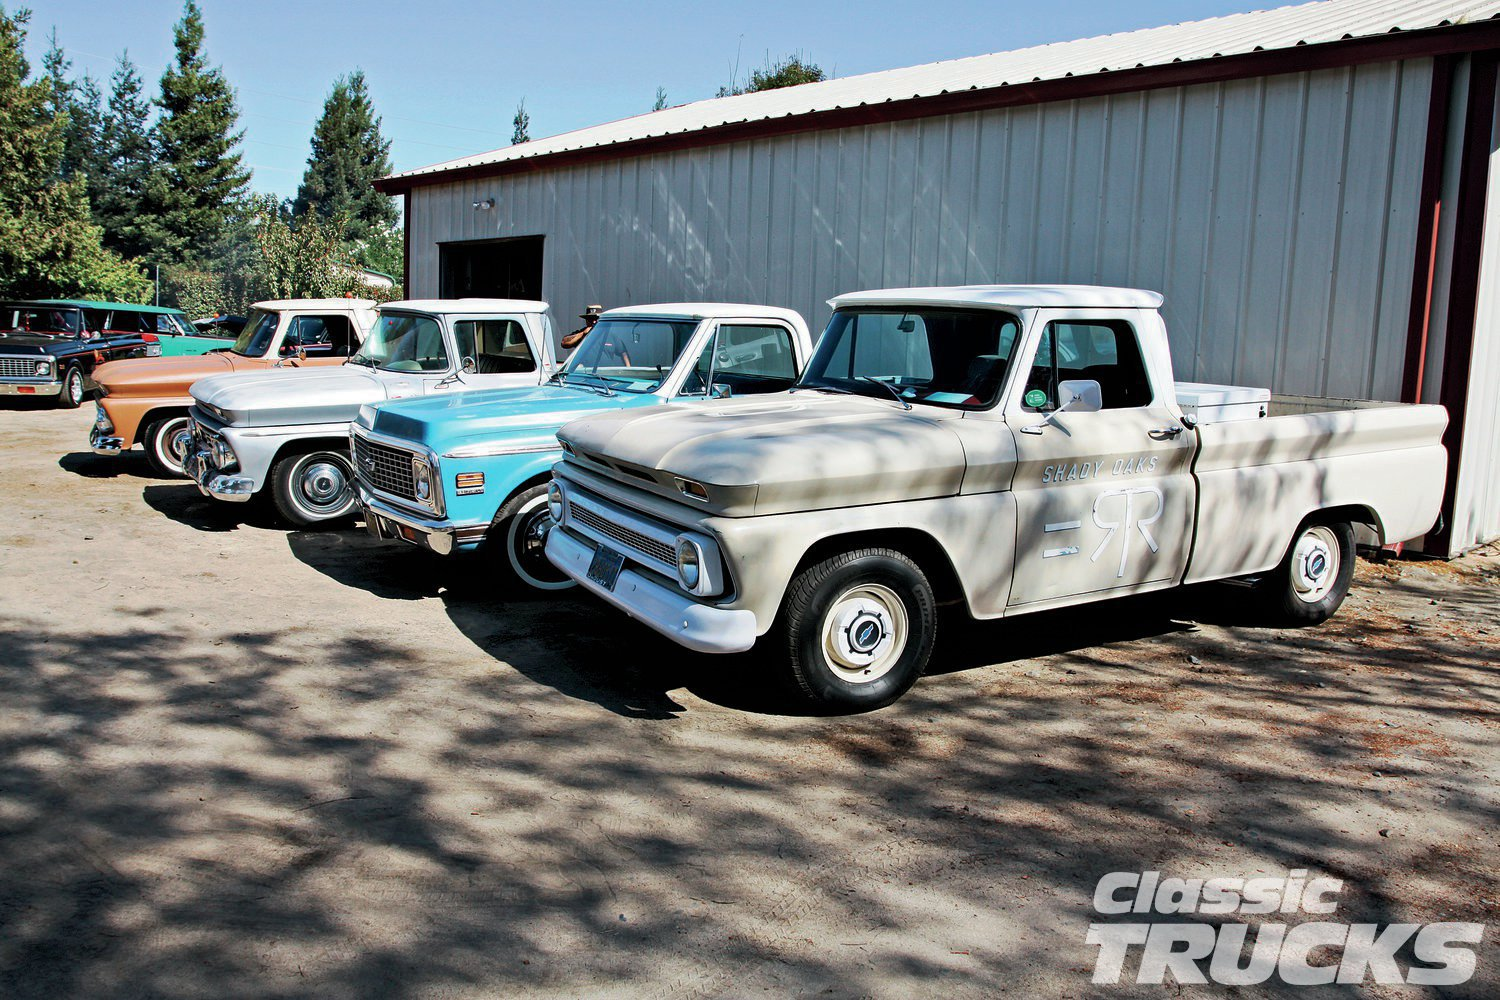 This was taken behind Rene's hobby barn. An astute observer would say the '60-'66 C10s are getting to be a hot commodity.